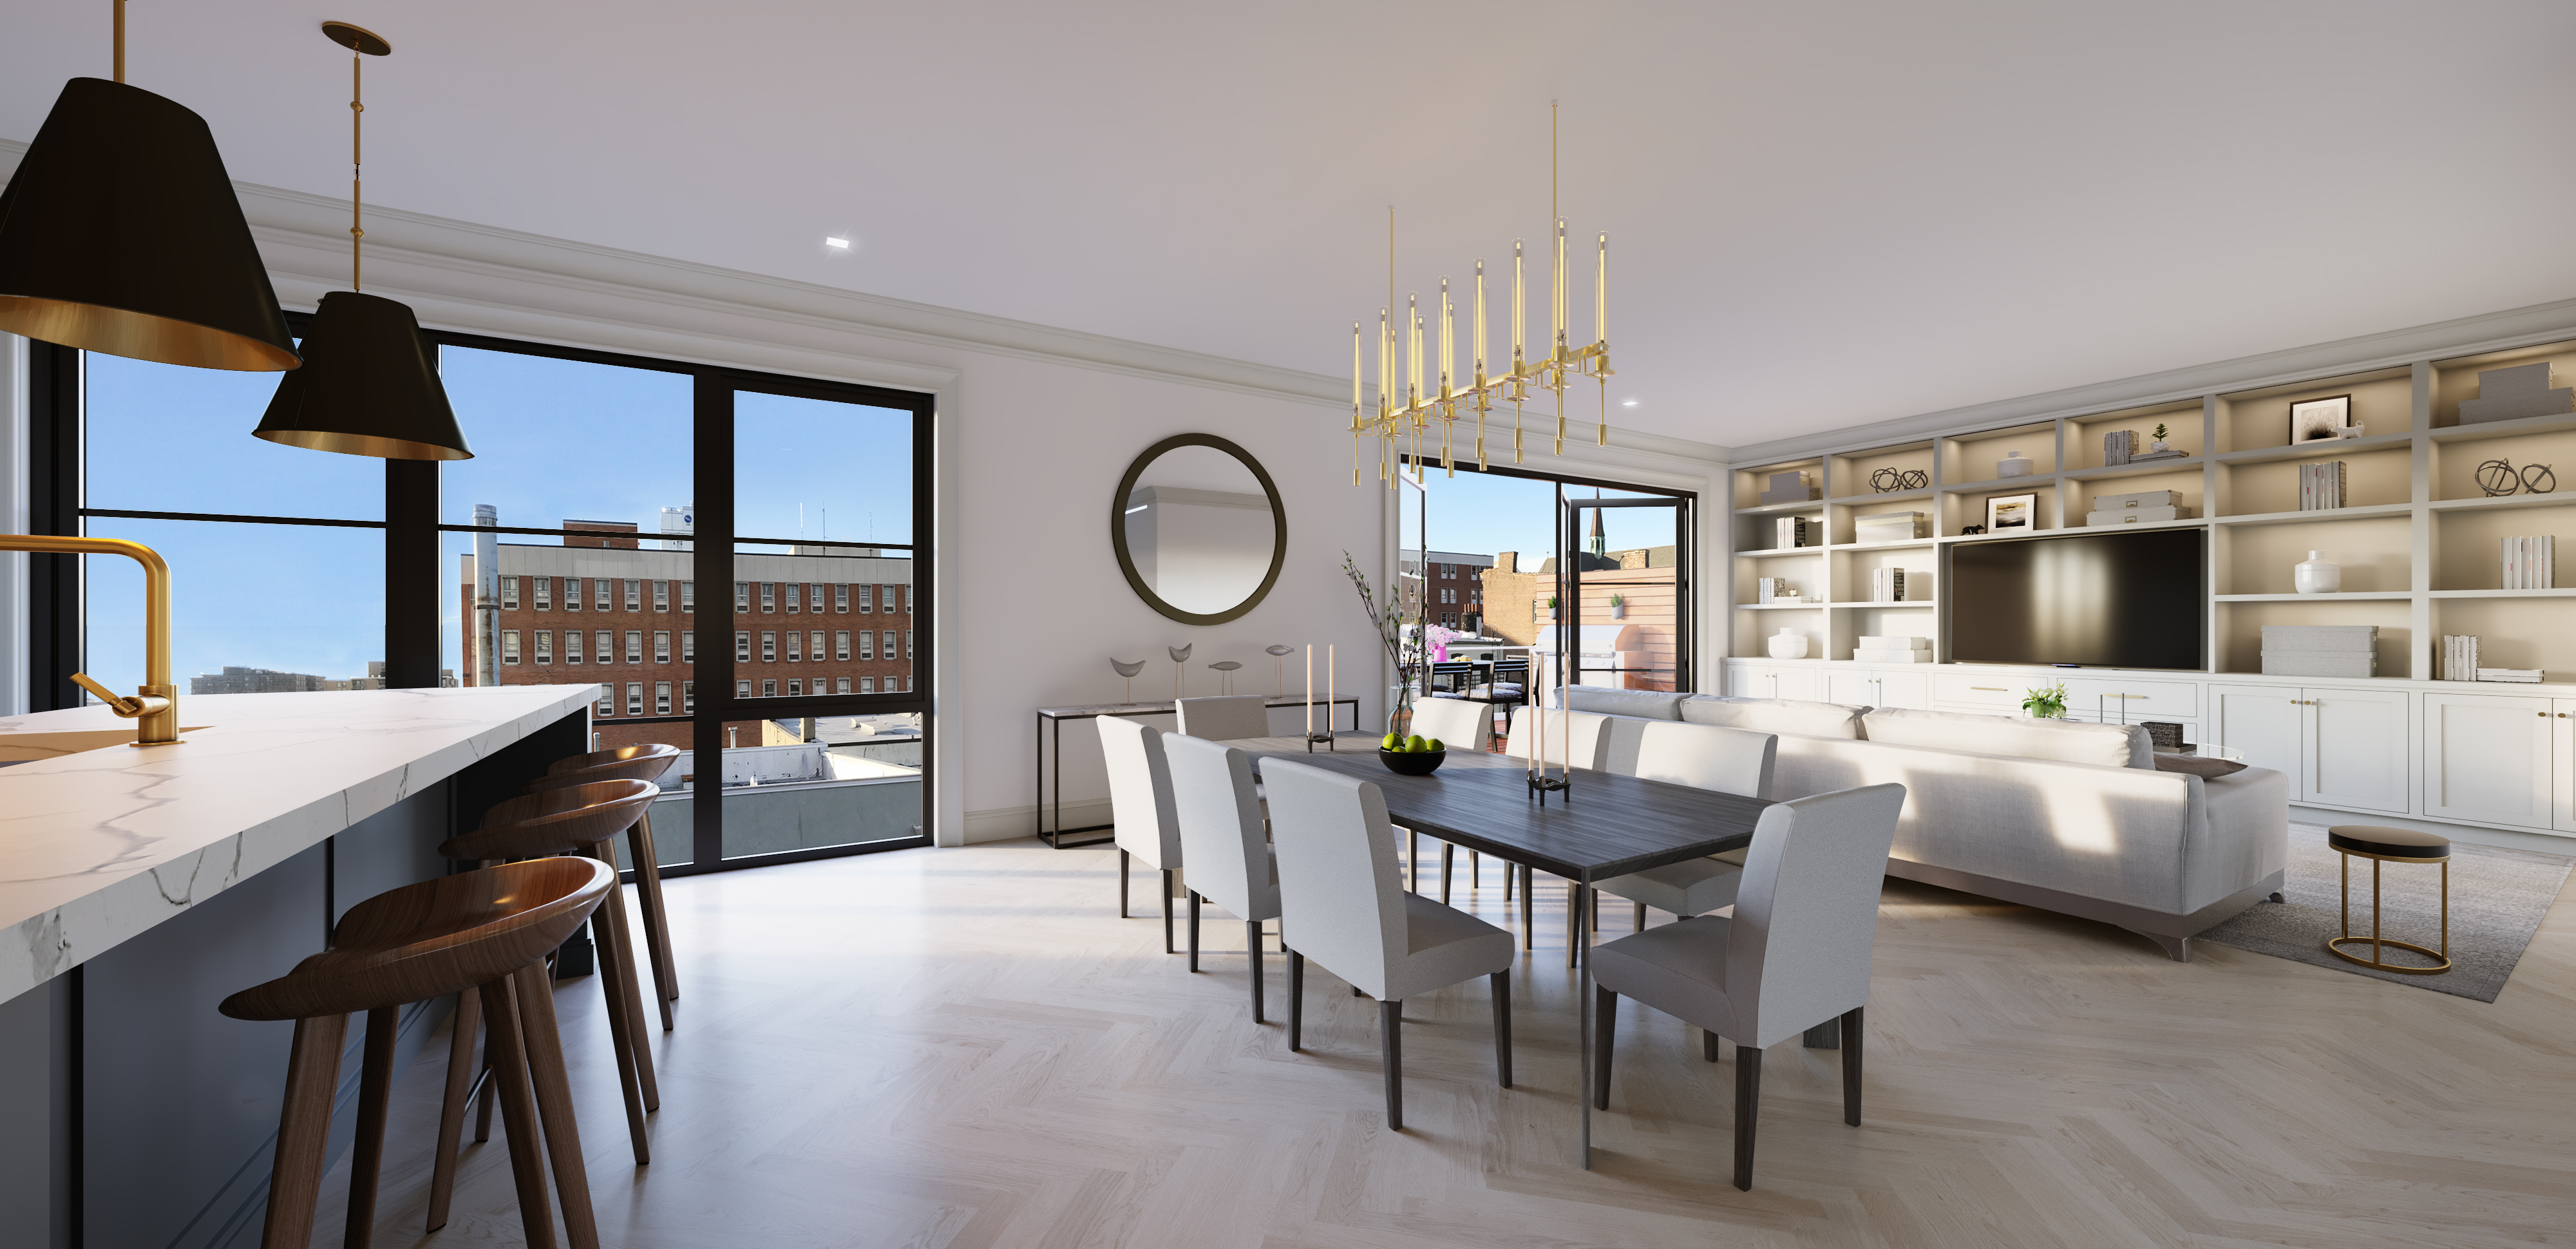 FEATURED PROPERTY: The Fig Tree at 306 Park Avenue No. 2, Hoboken ...